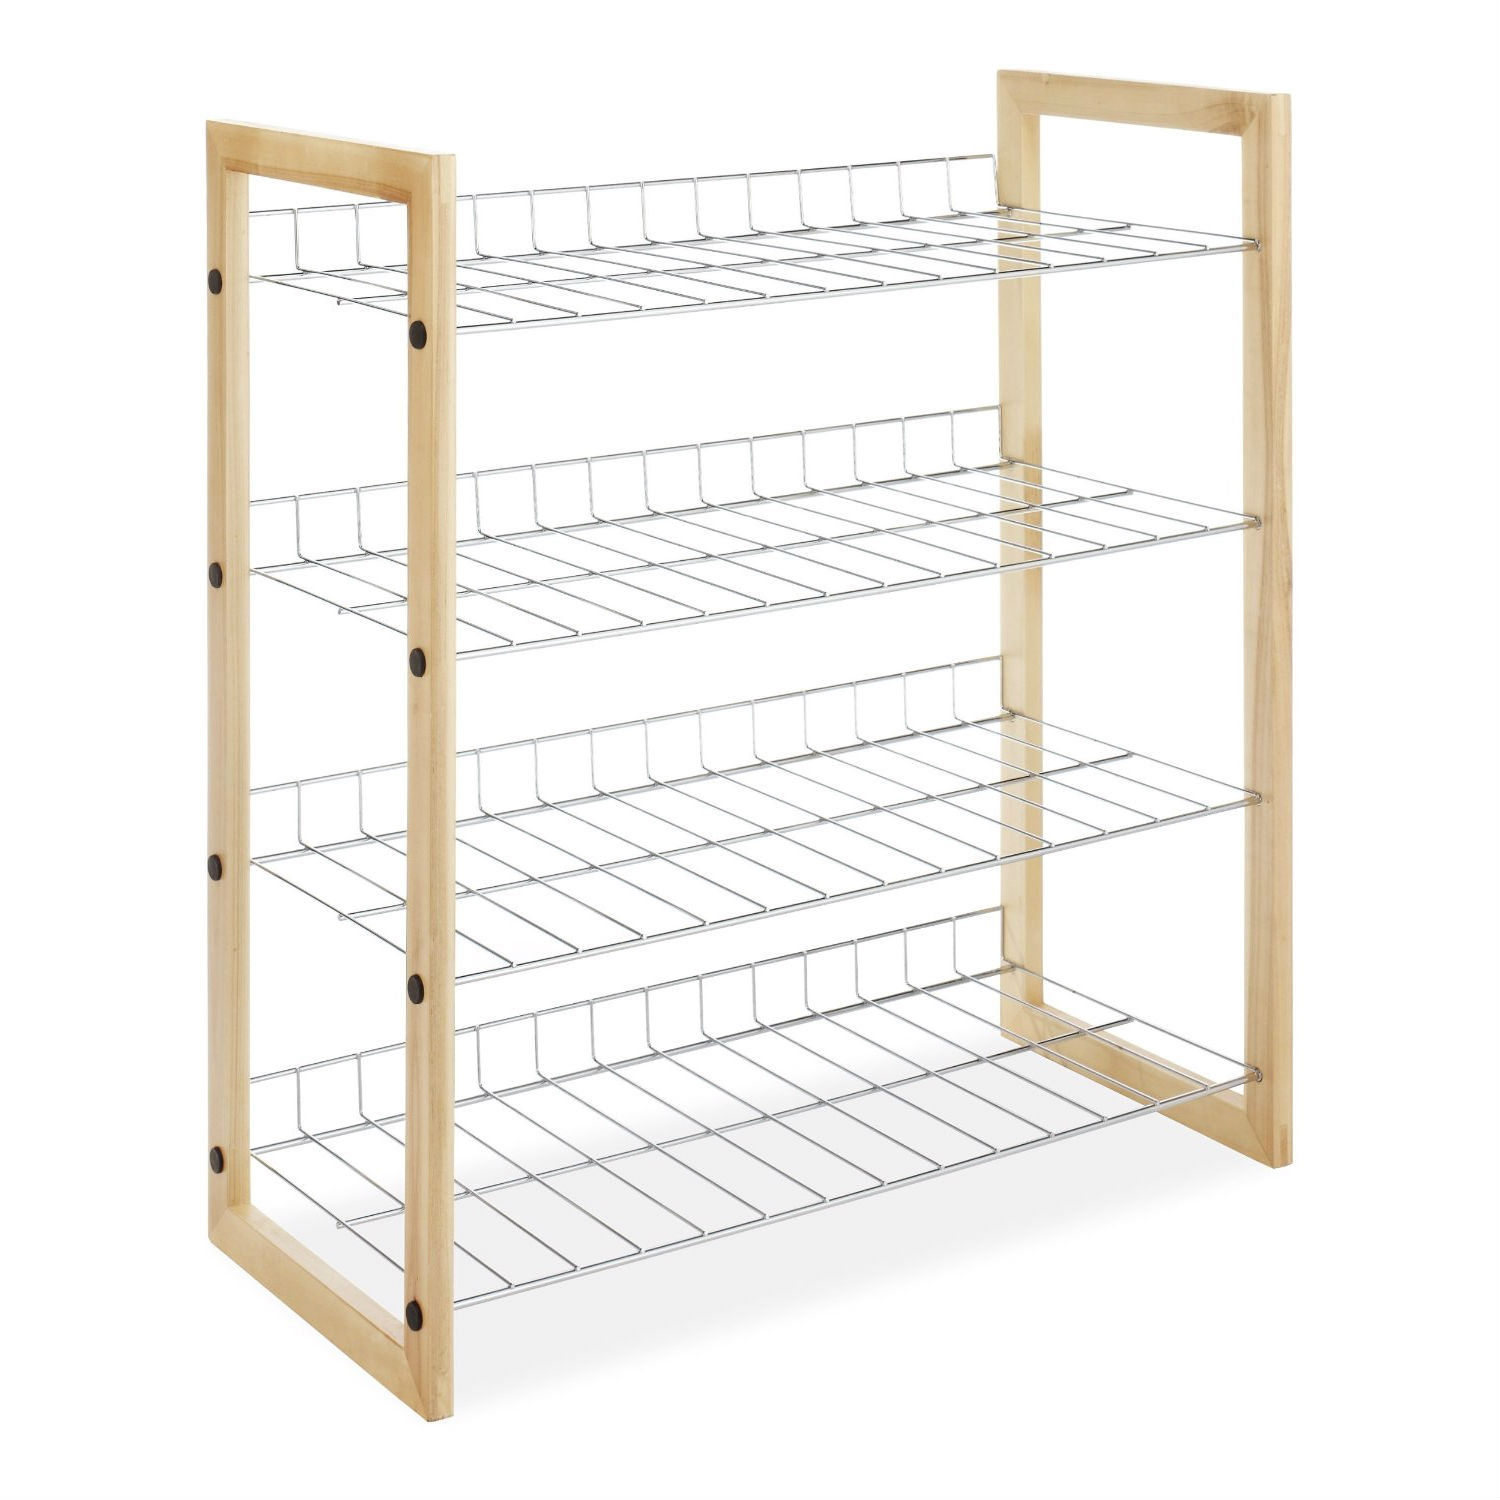 4 Shelf Closet Shoe Rack With Natural Wood Frame And Chrome Wire Shelves Fastfurnishings